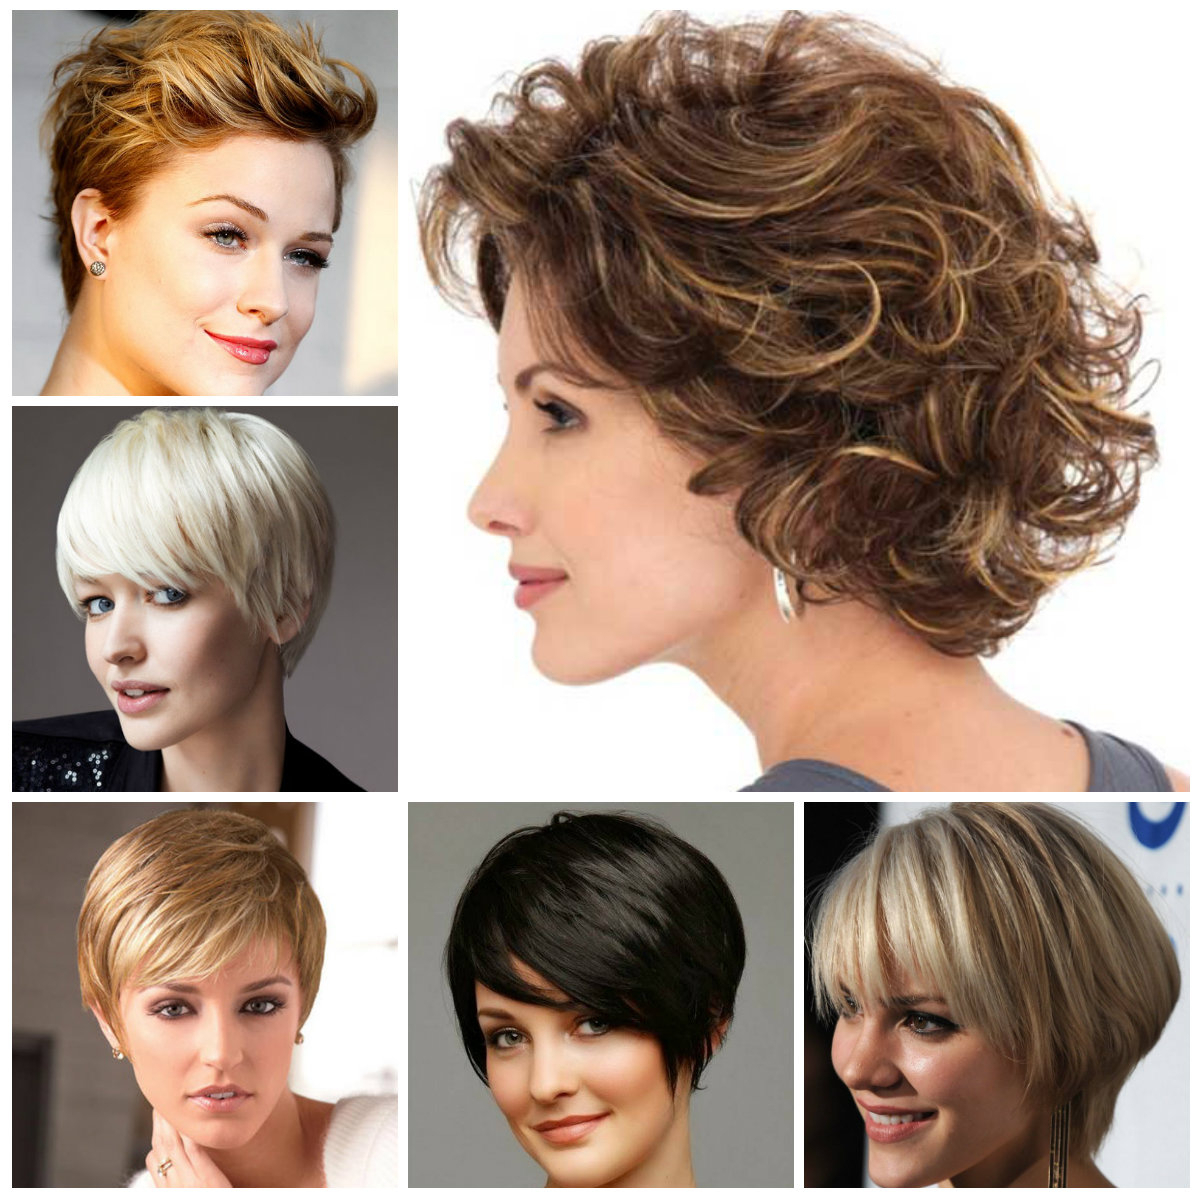 Short Layered Hairstyle Ideas For 2019 | Hairstyles For Women 2019 With Regard To Short Layered Hairstyles (View 9 of 20)